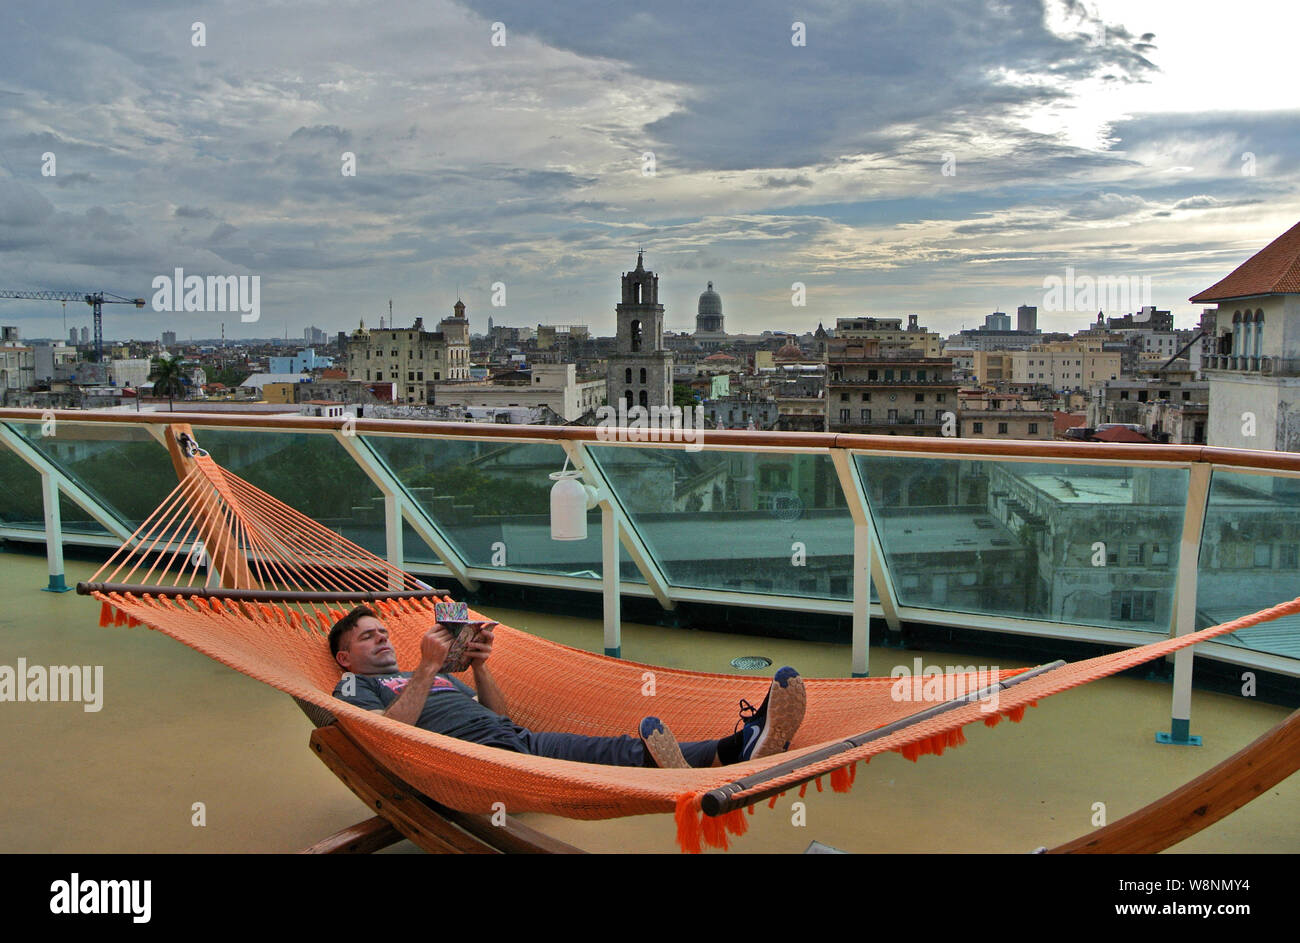 tourist on cruise ship relaxes with glass of wine in hammock on deck overlooking old town havana Stock Photo